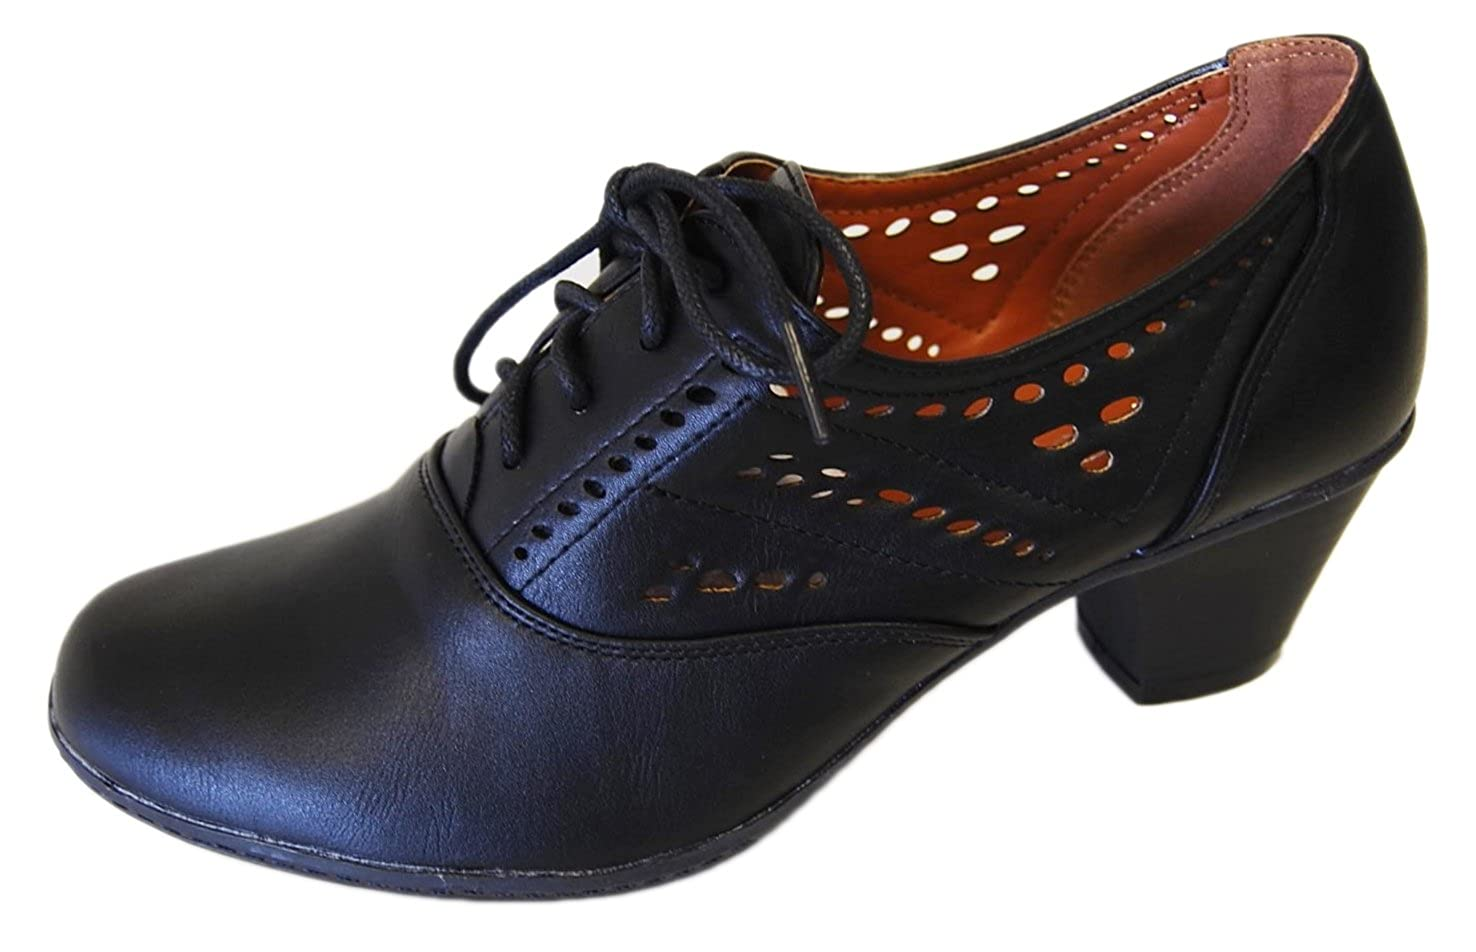 1940s Style Shoes, 40s Shoes Refresh Womens London-01 Cutout Heeled Oxford $41.90 AT vintagedancer.com